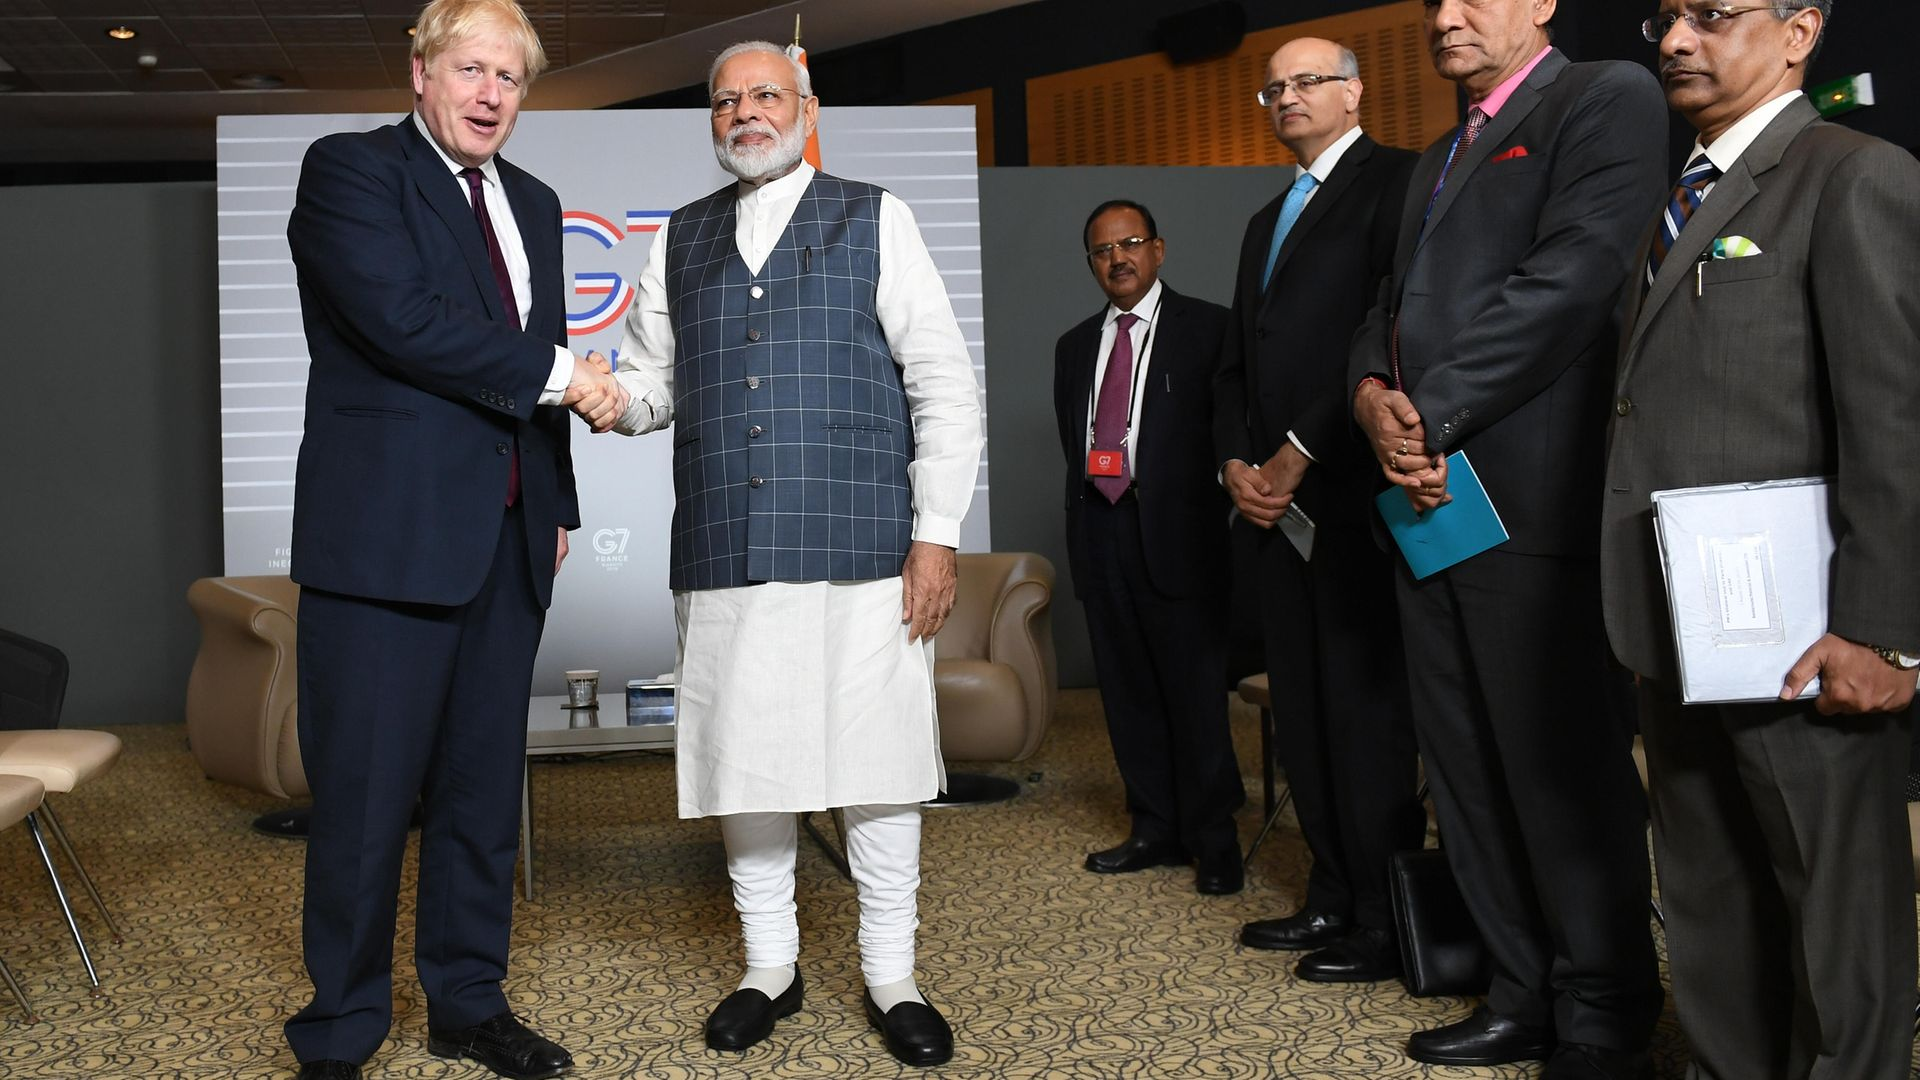 Prime minister Boris Johnson meeting India PM Narendra Modi for bilateral talks during the G7 summit in Biarritz, France in 2019 - Credit: PA